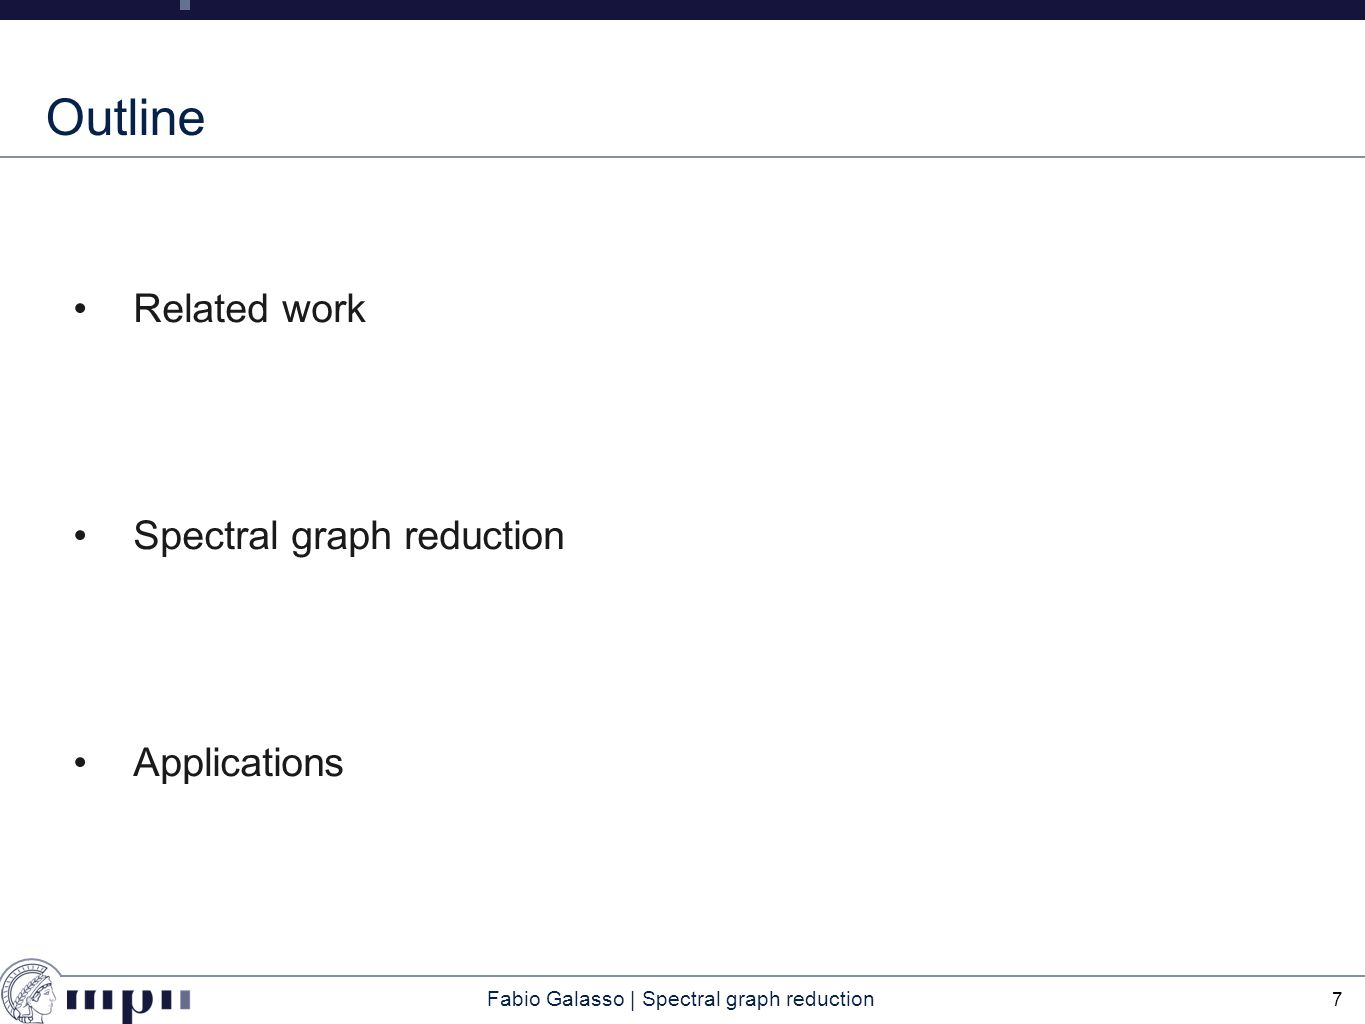 Fabio Galasso | Spectral graph reduction Outline Related work Spectral graph reduction Applications 7